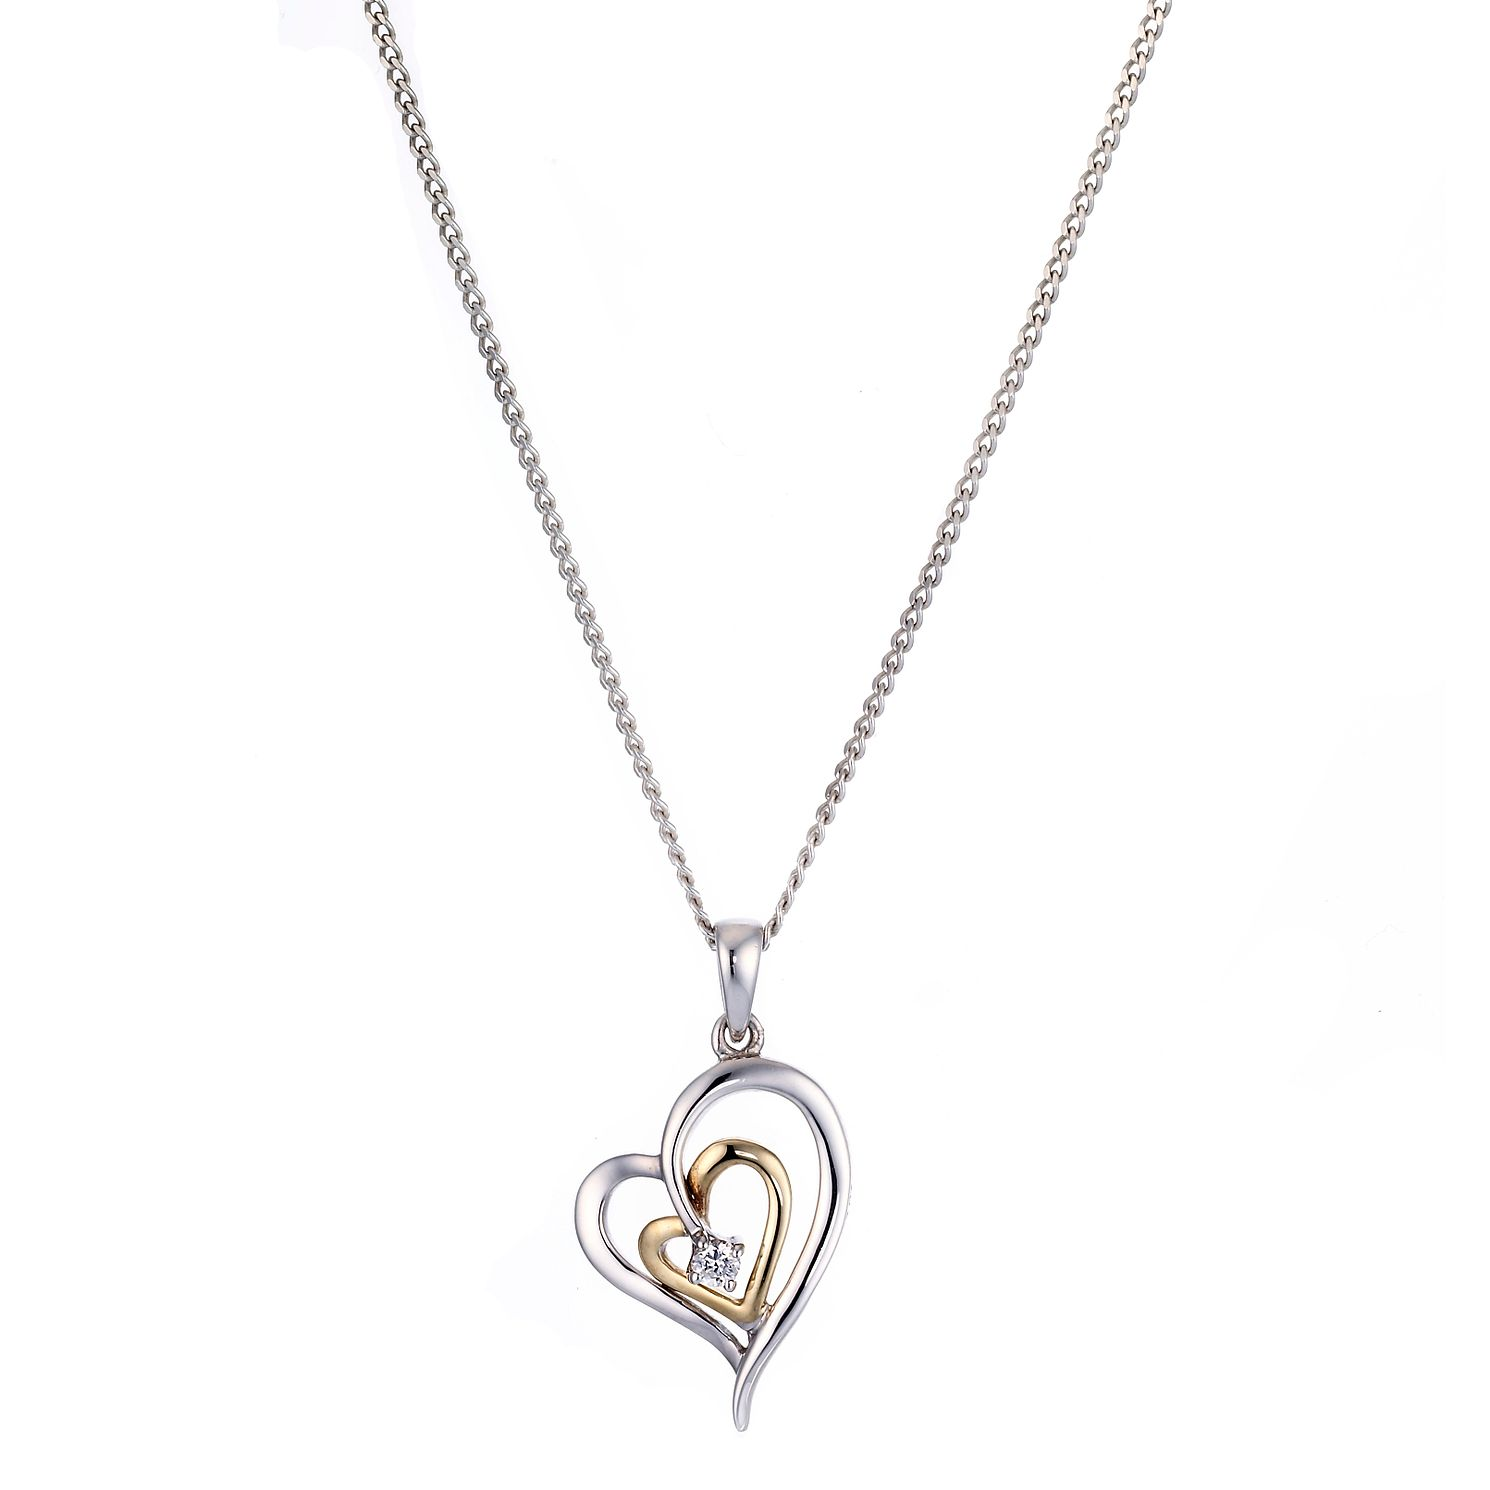 jewellery necklace product heart brushed wid